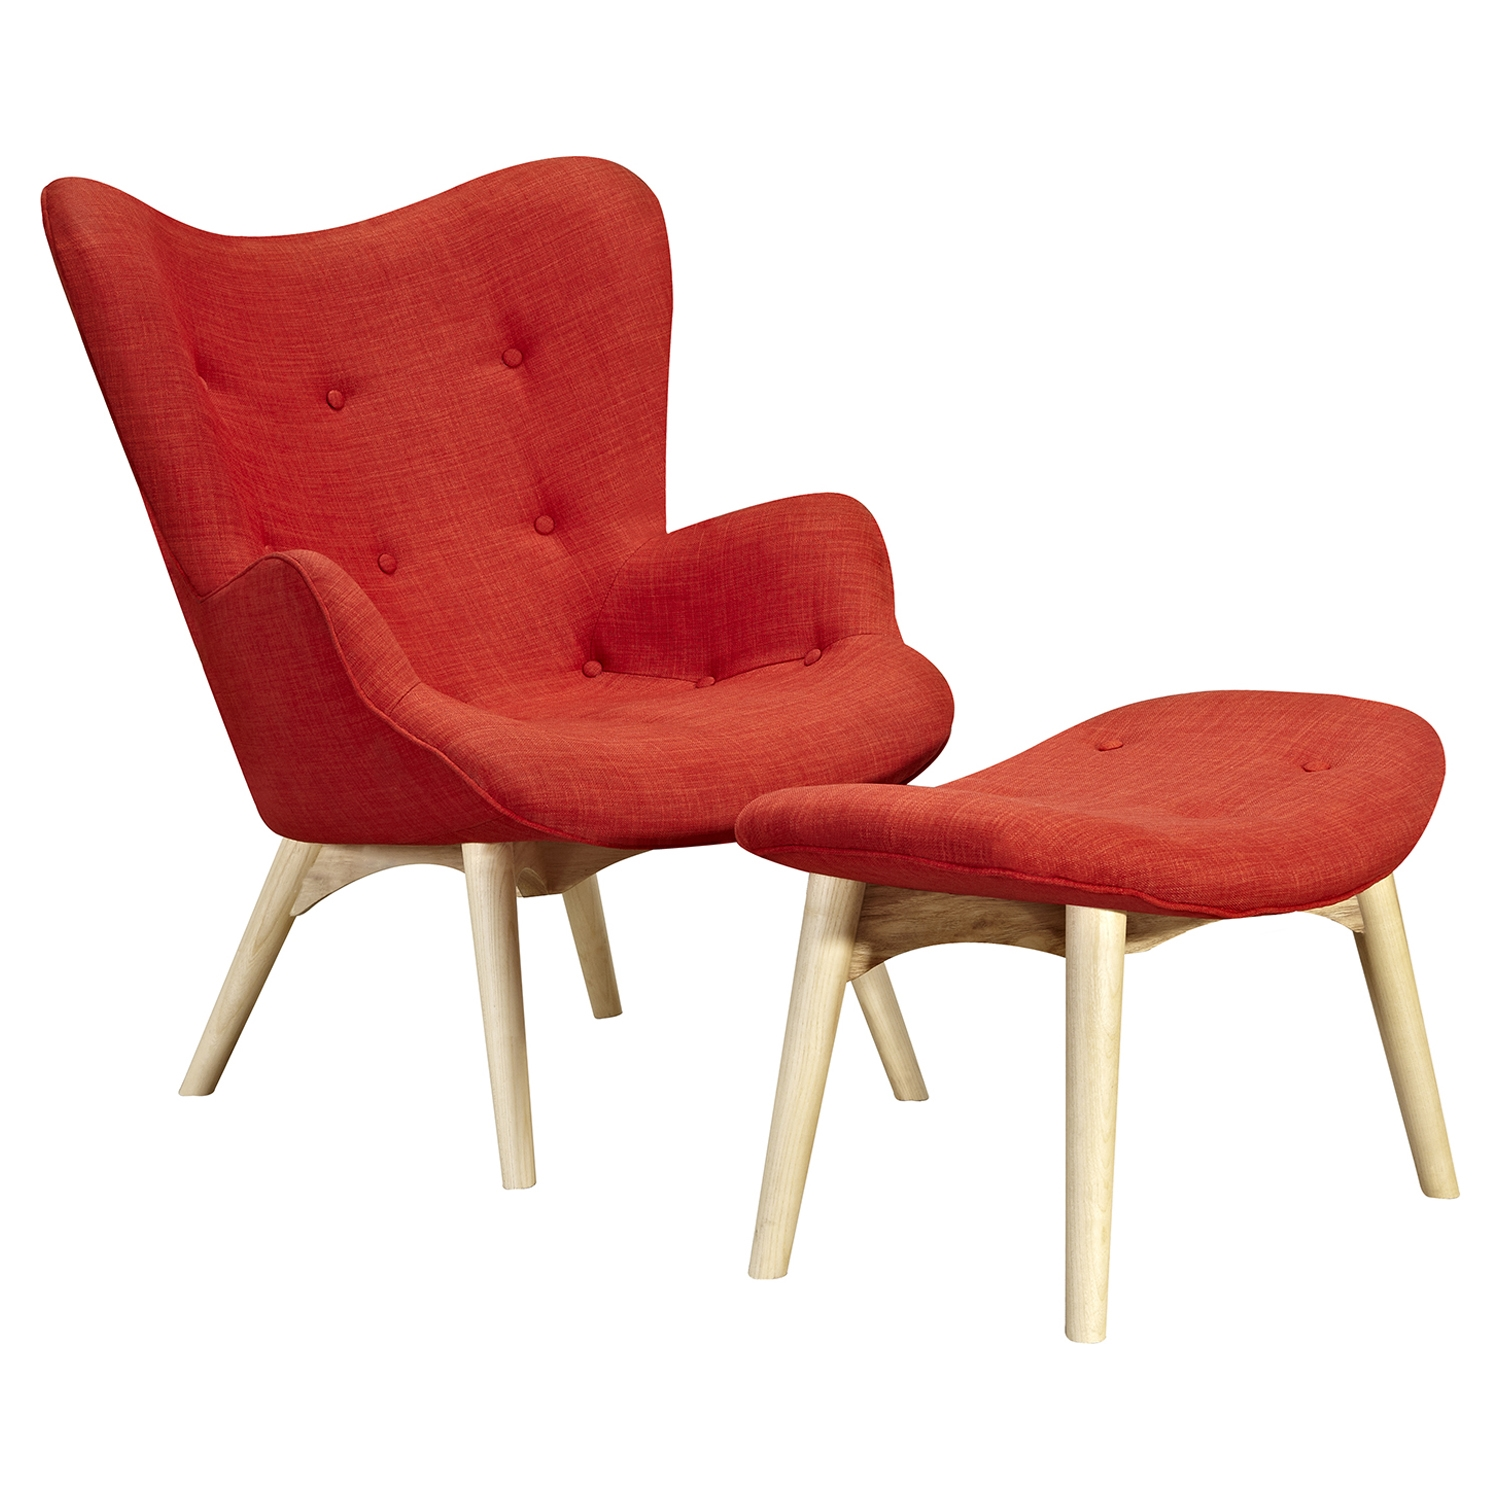 Aiden Button Tufted Chair - Lava Red